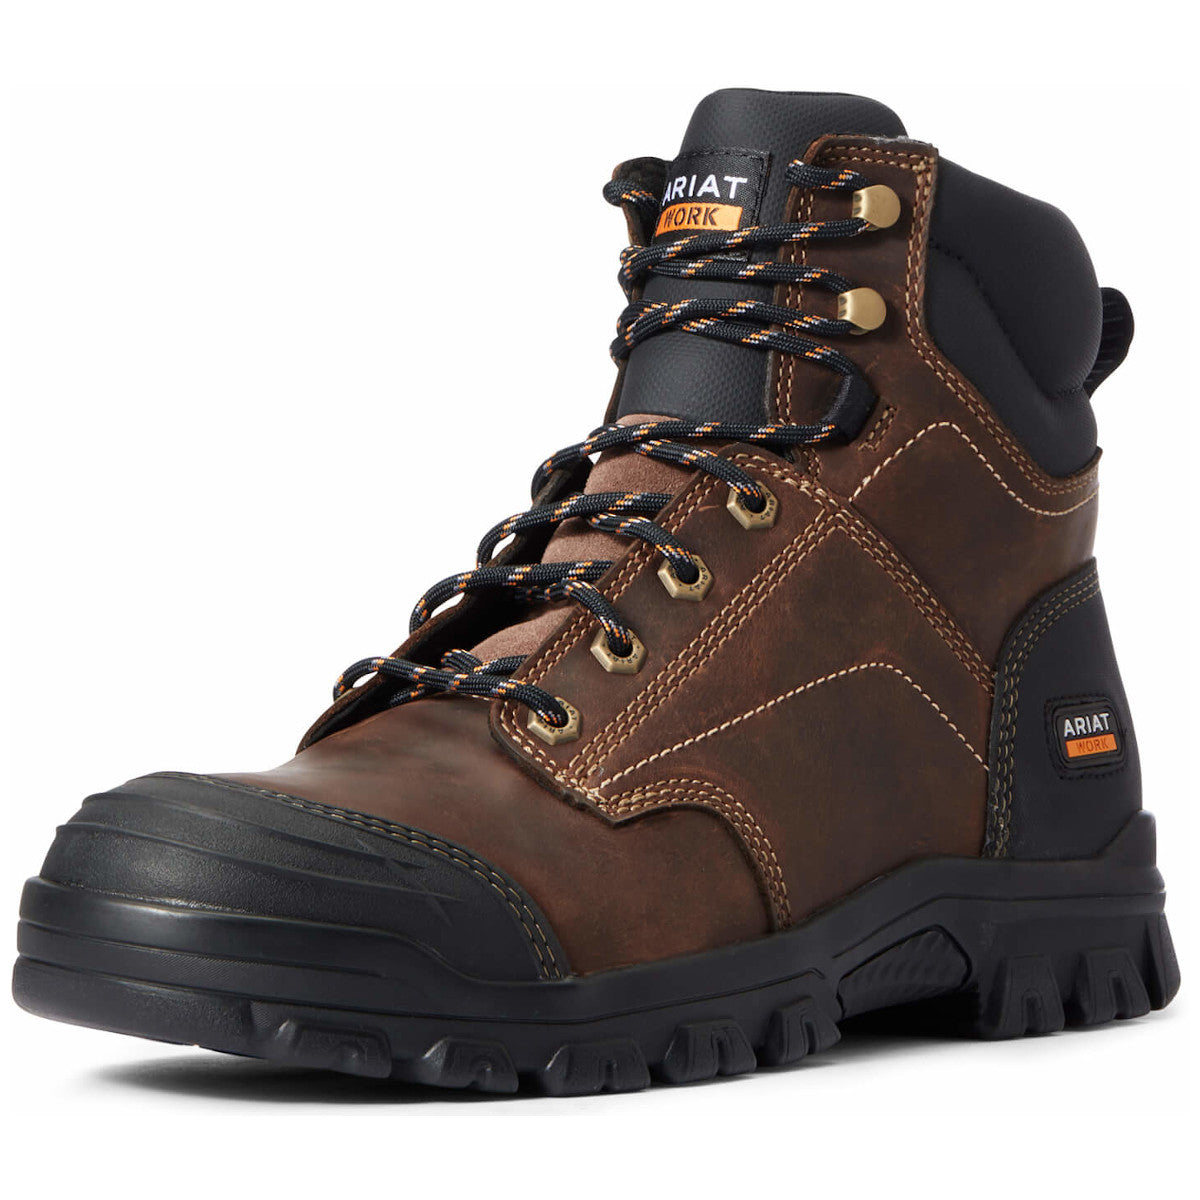 "Ariat Men's Treadfast 6"" Work Boots"